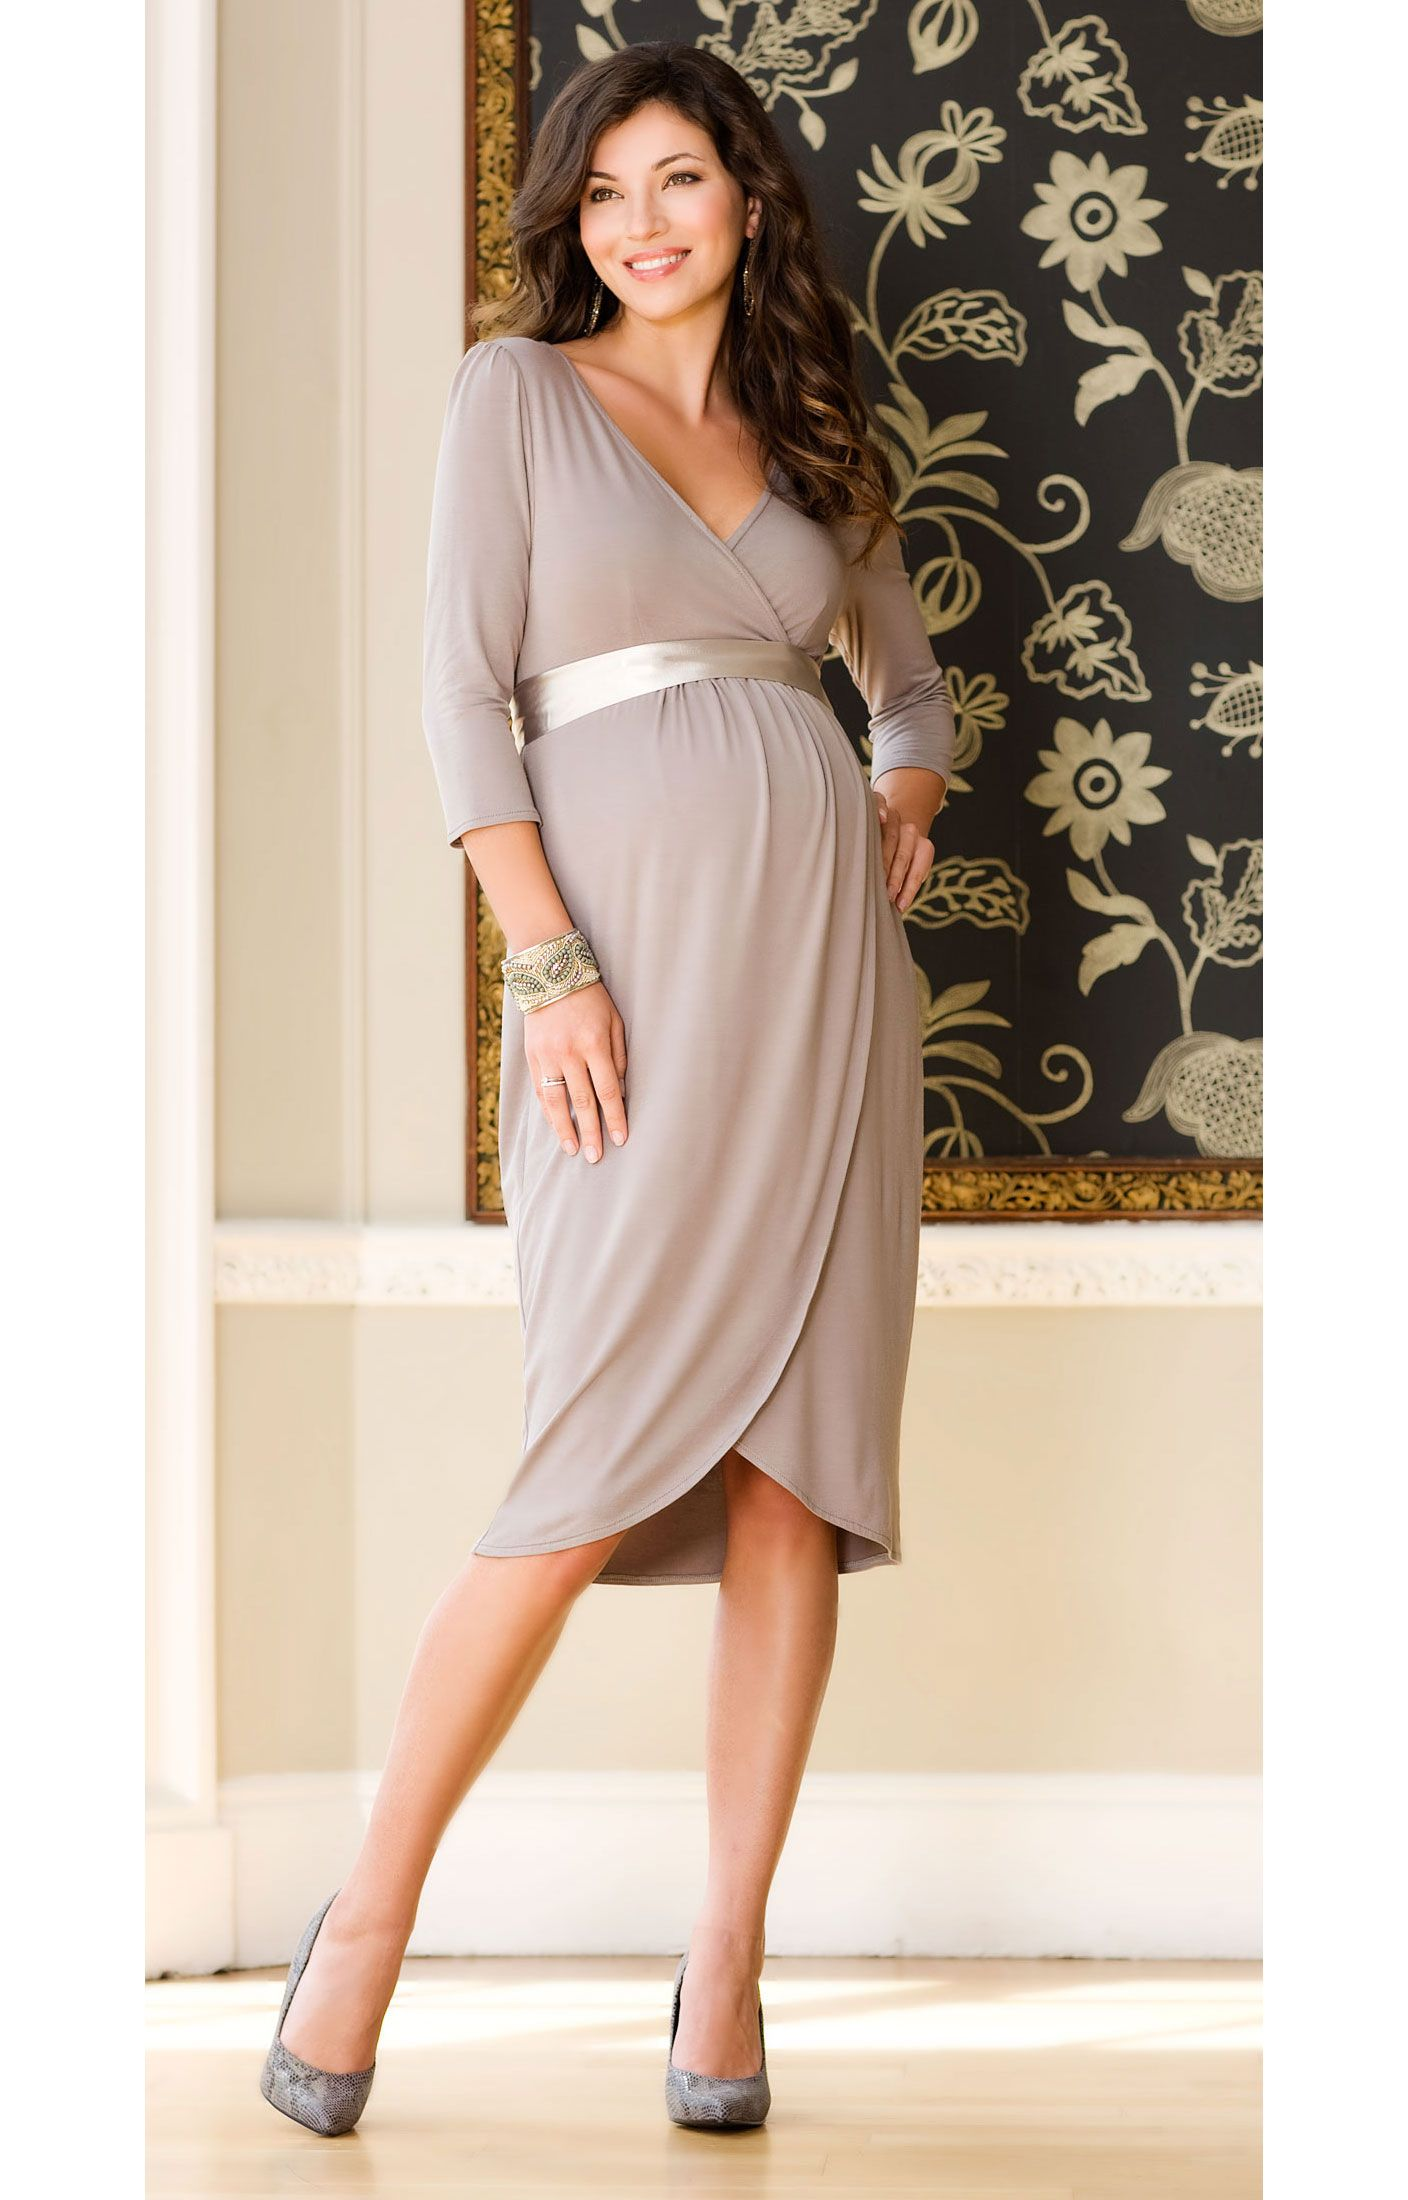 Tulip dress tiffany rose maternity dresses and tiffany pregnancy style ombrellifo Gallery